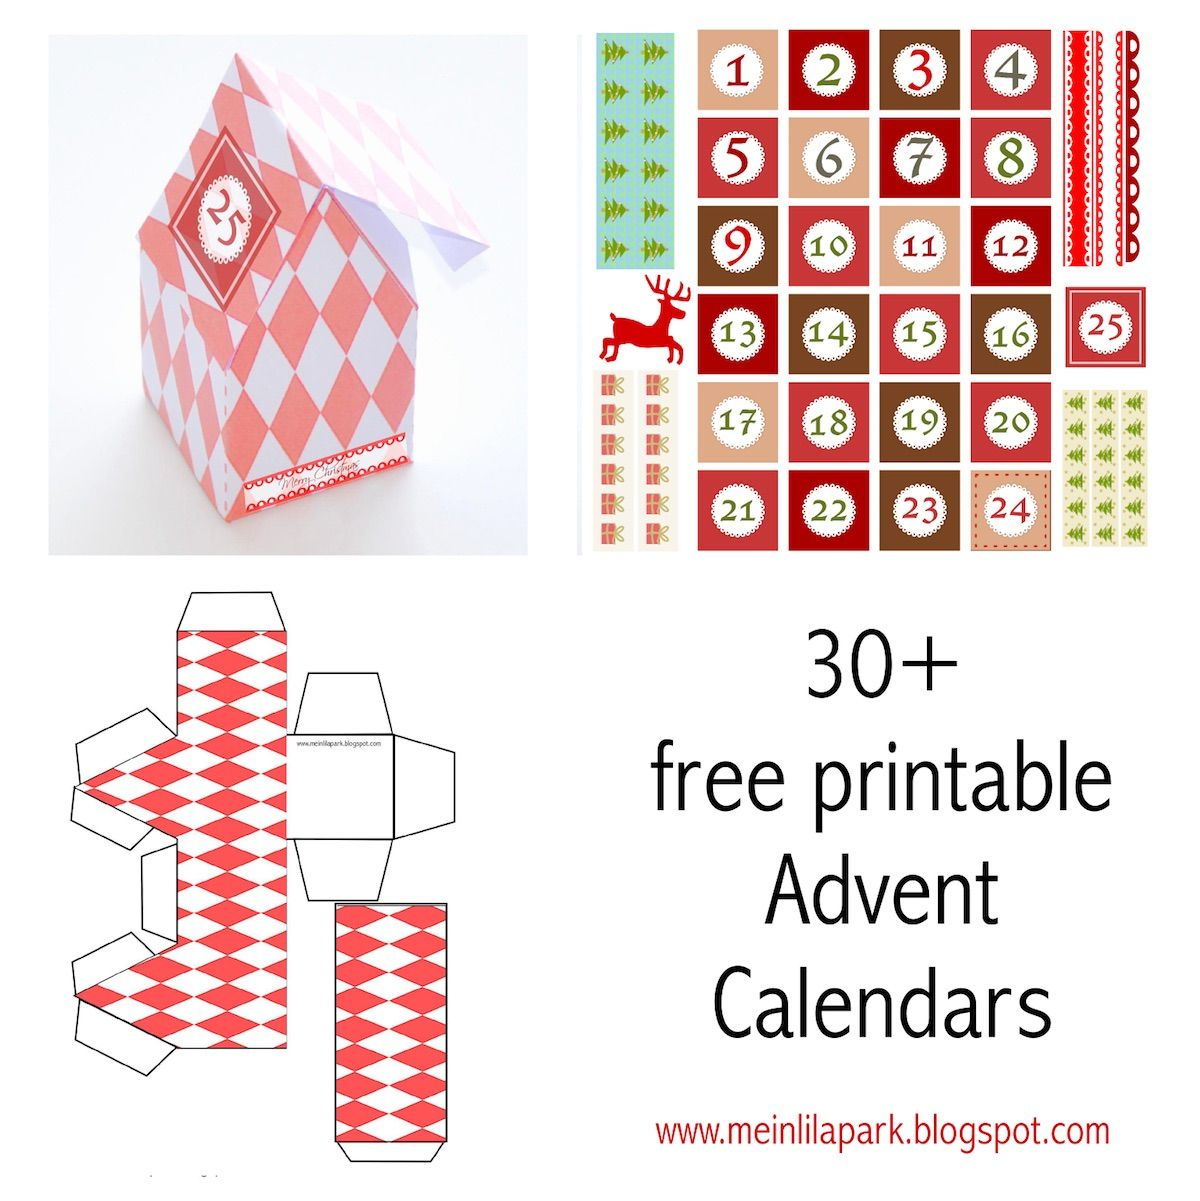 Adventskalender Downloads Ausdruckbare Diy Adventskalender